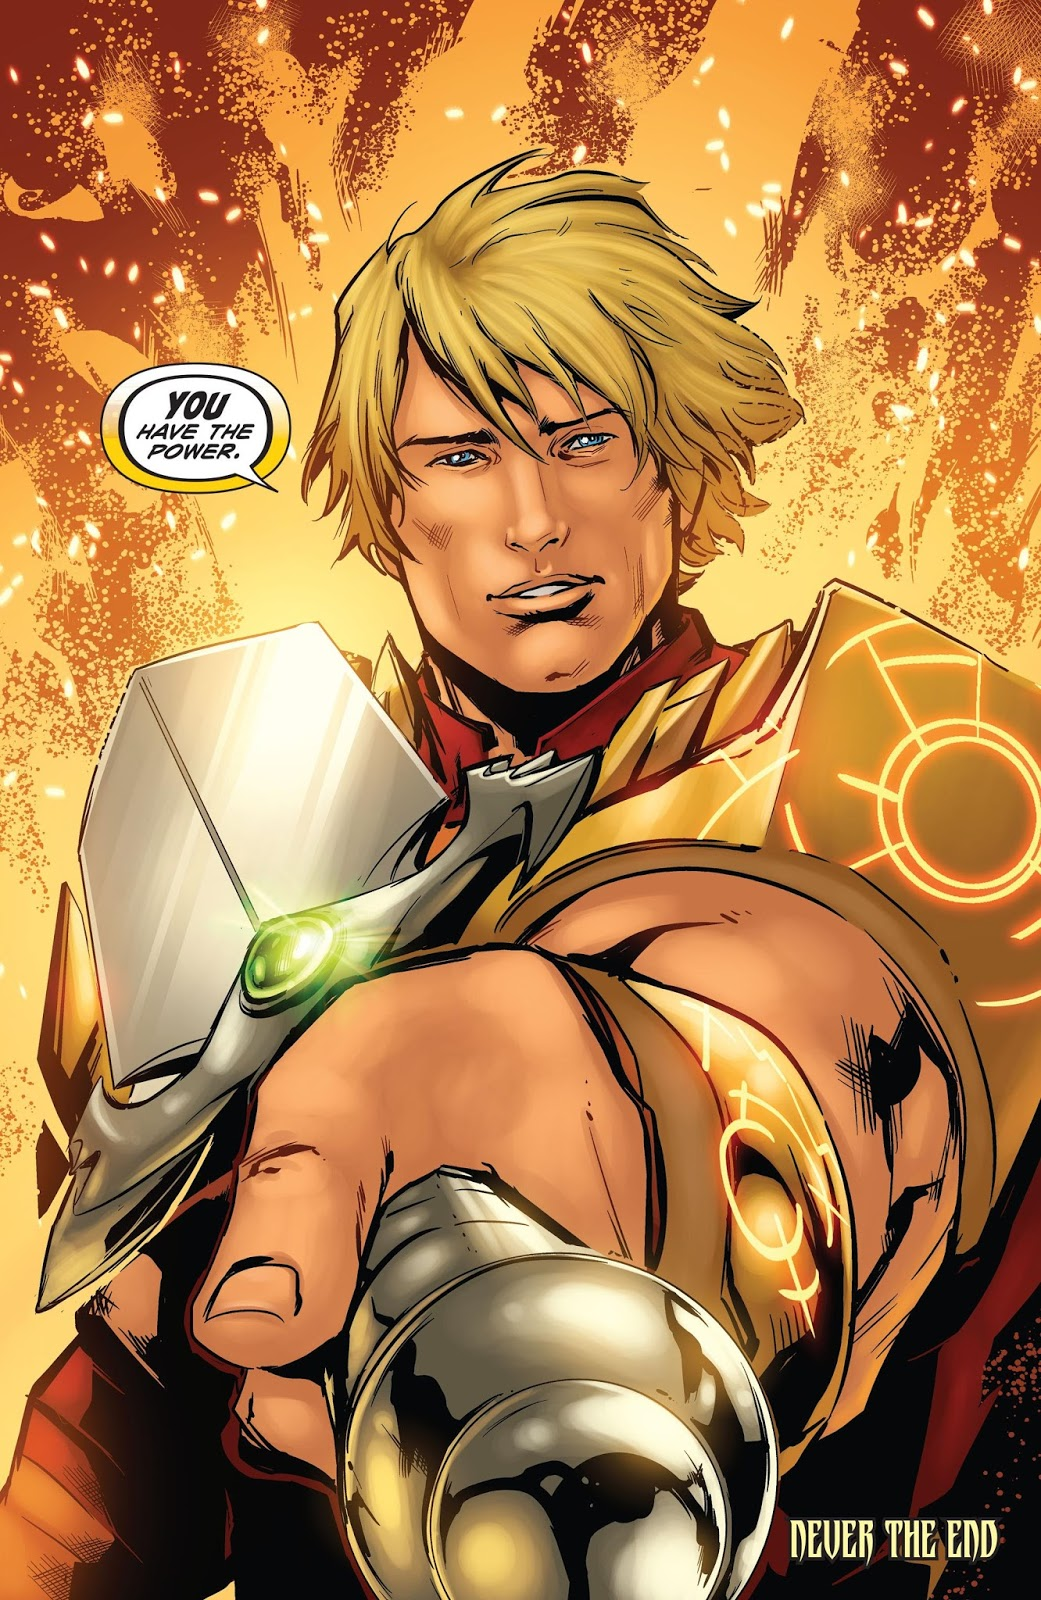 Weird Science Dc Comics He Man The Eternity War 15 Review With tenor, maker of gif keyboard, add popular he man i have the power animated gifs to your conversations. dc comics he man the eternity war 15